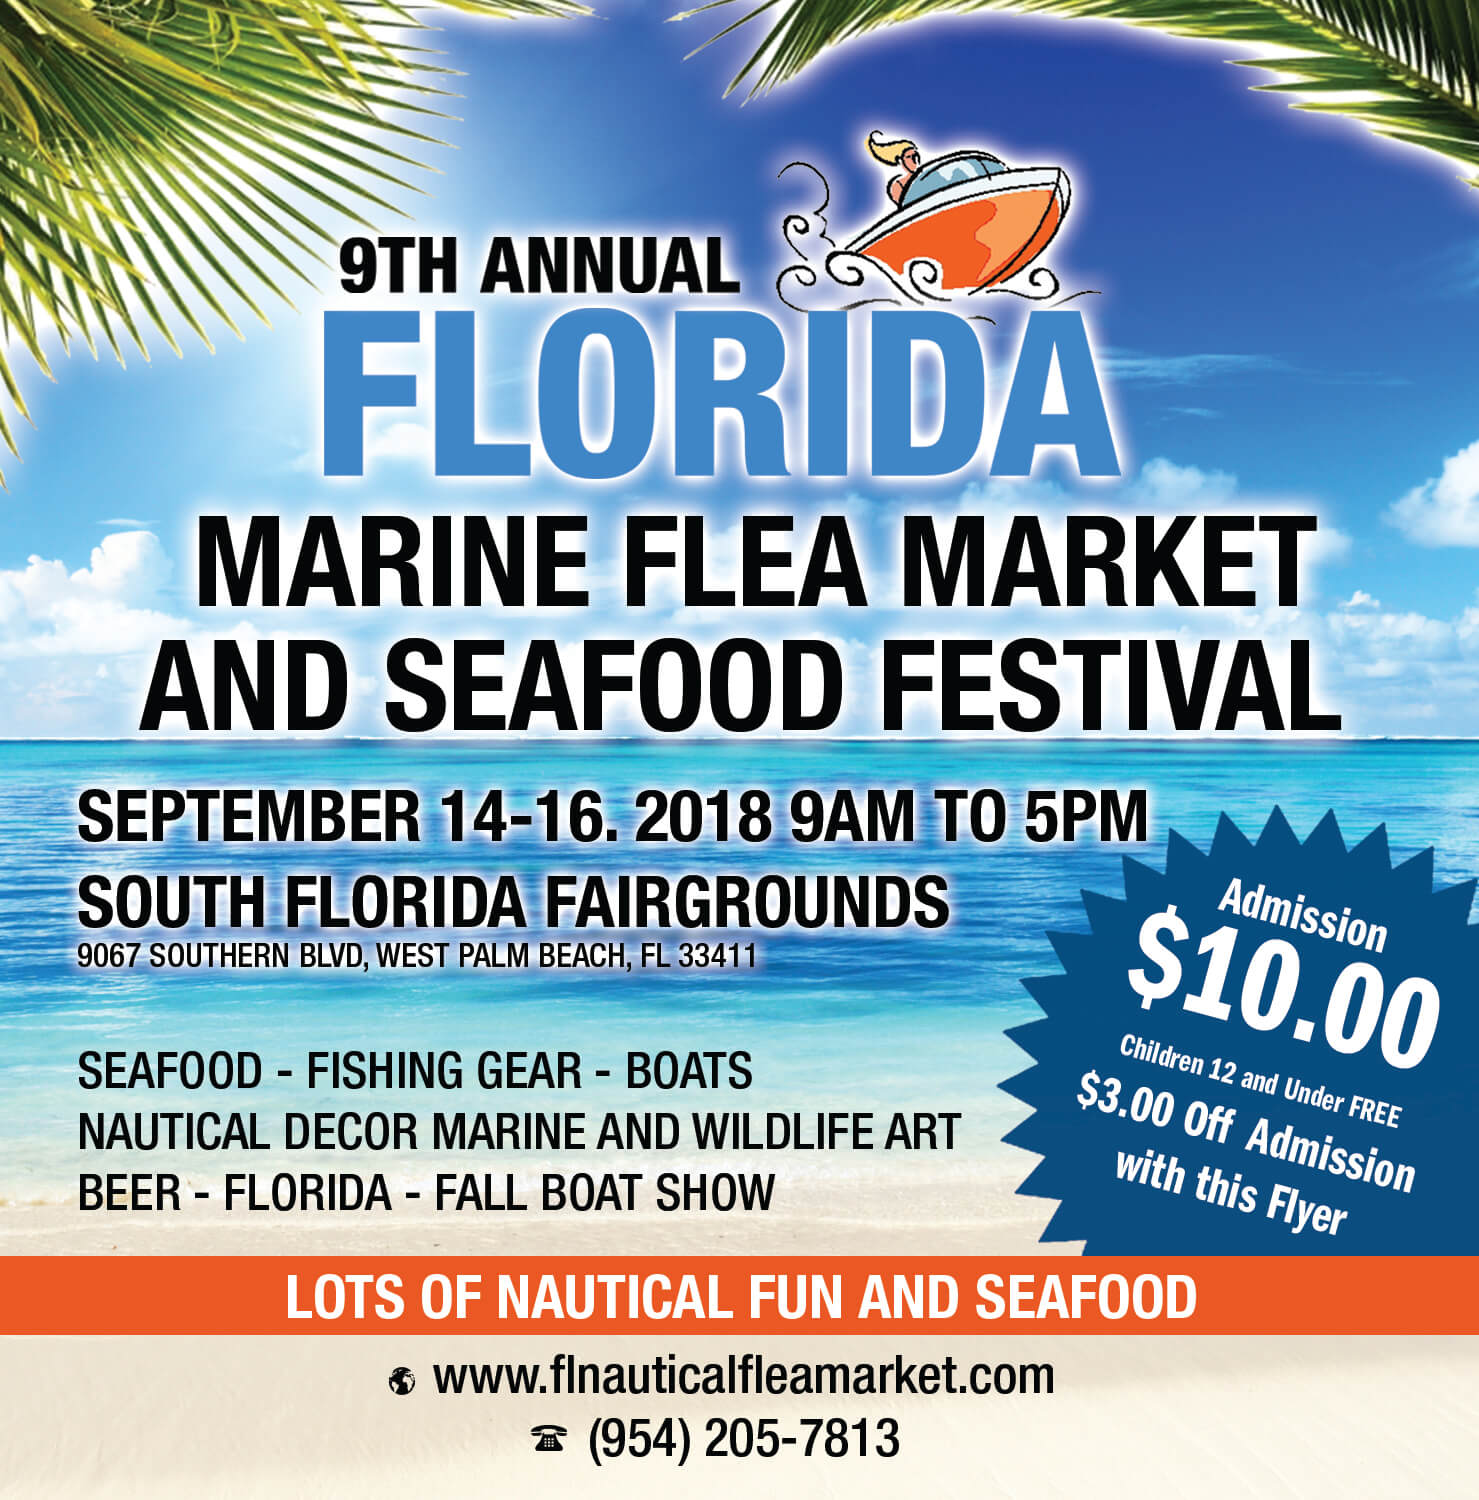 West Palm Beach Fla September 10 2018 Newswire The Florida Marine Flea Market Seafood Festival Fall Boat Show And Wildlife